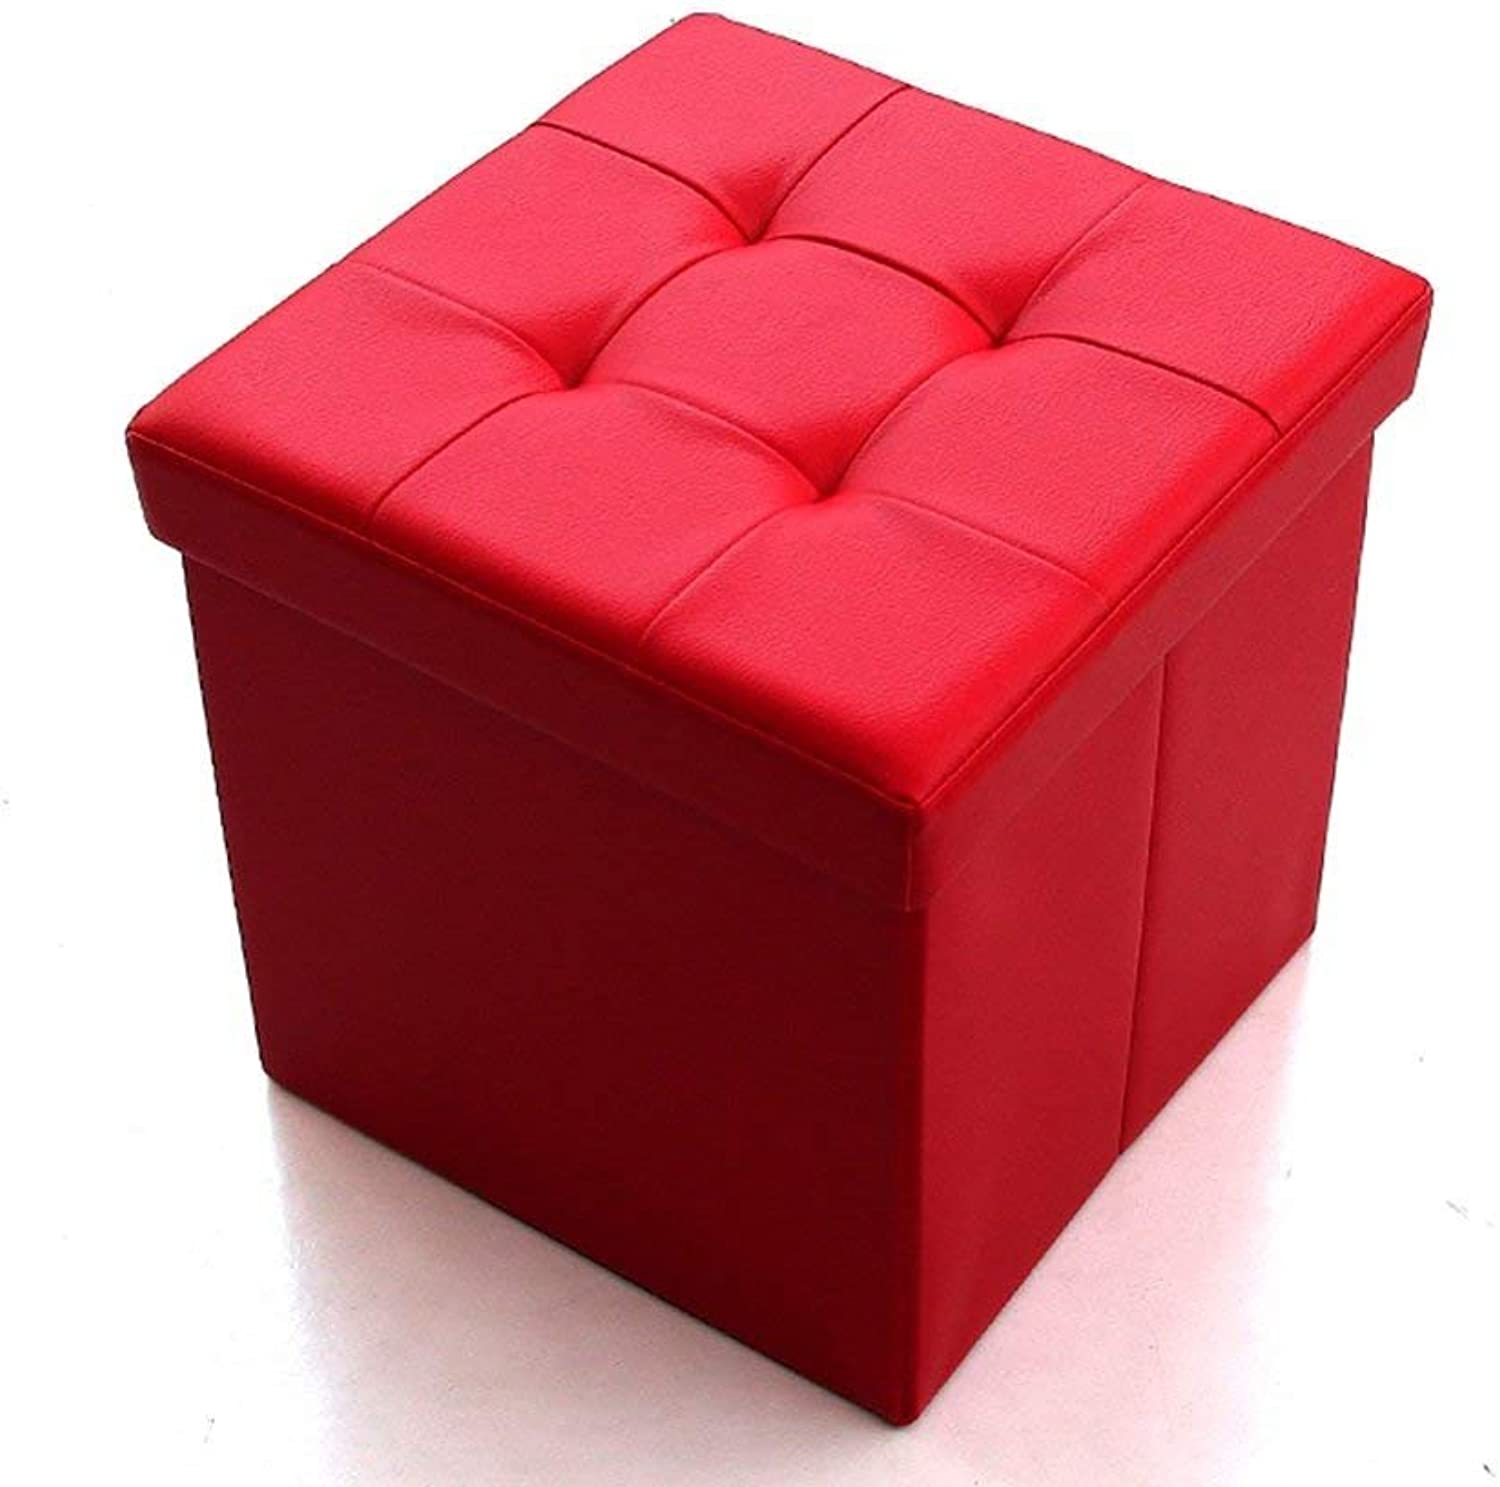 CWJ Sofa Stool- Multi-Function for shoes Stool The Sofa can sit in The Storage Box Foldable Stool Square pu Storage Stool (4 colors Optional) (38  38  38cm) -Storage Stool